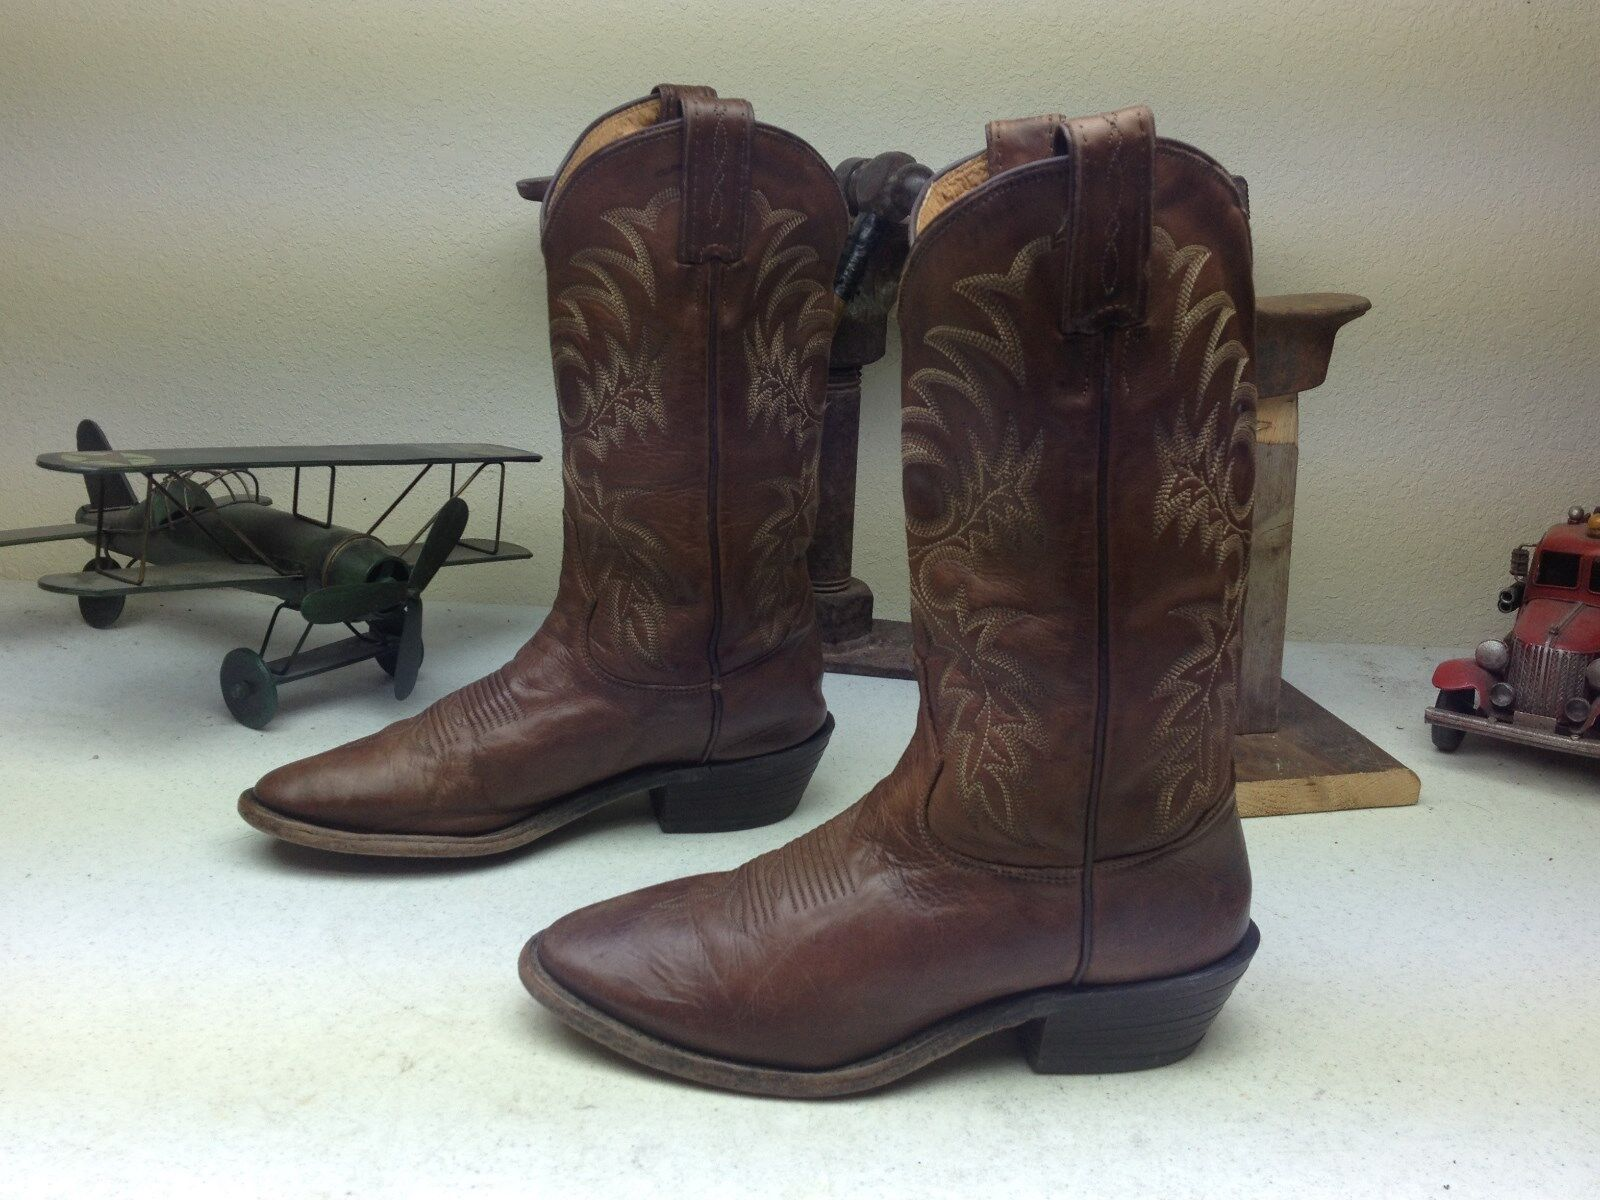 MADE IN USA TONY LAMA VINTAGE DISTRESSED BROWN LEATHER WESTERN COWBOY BOOTS 7 D